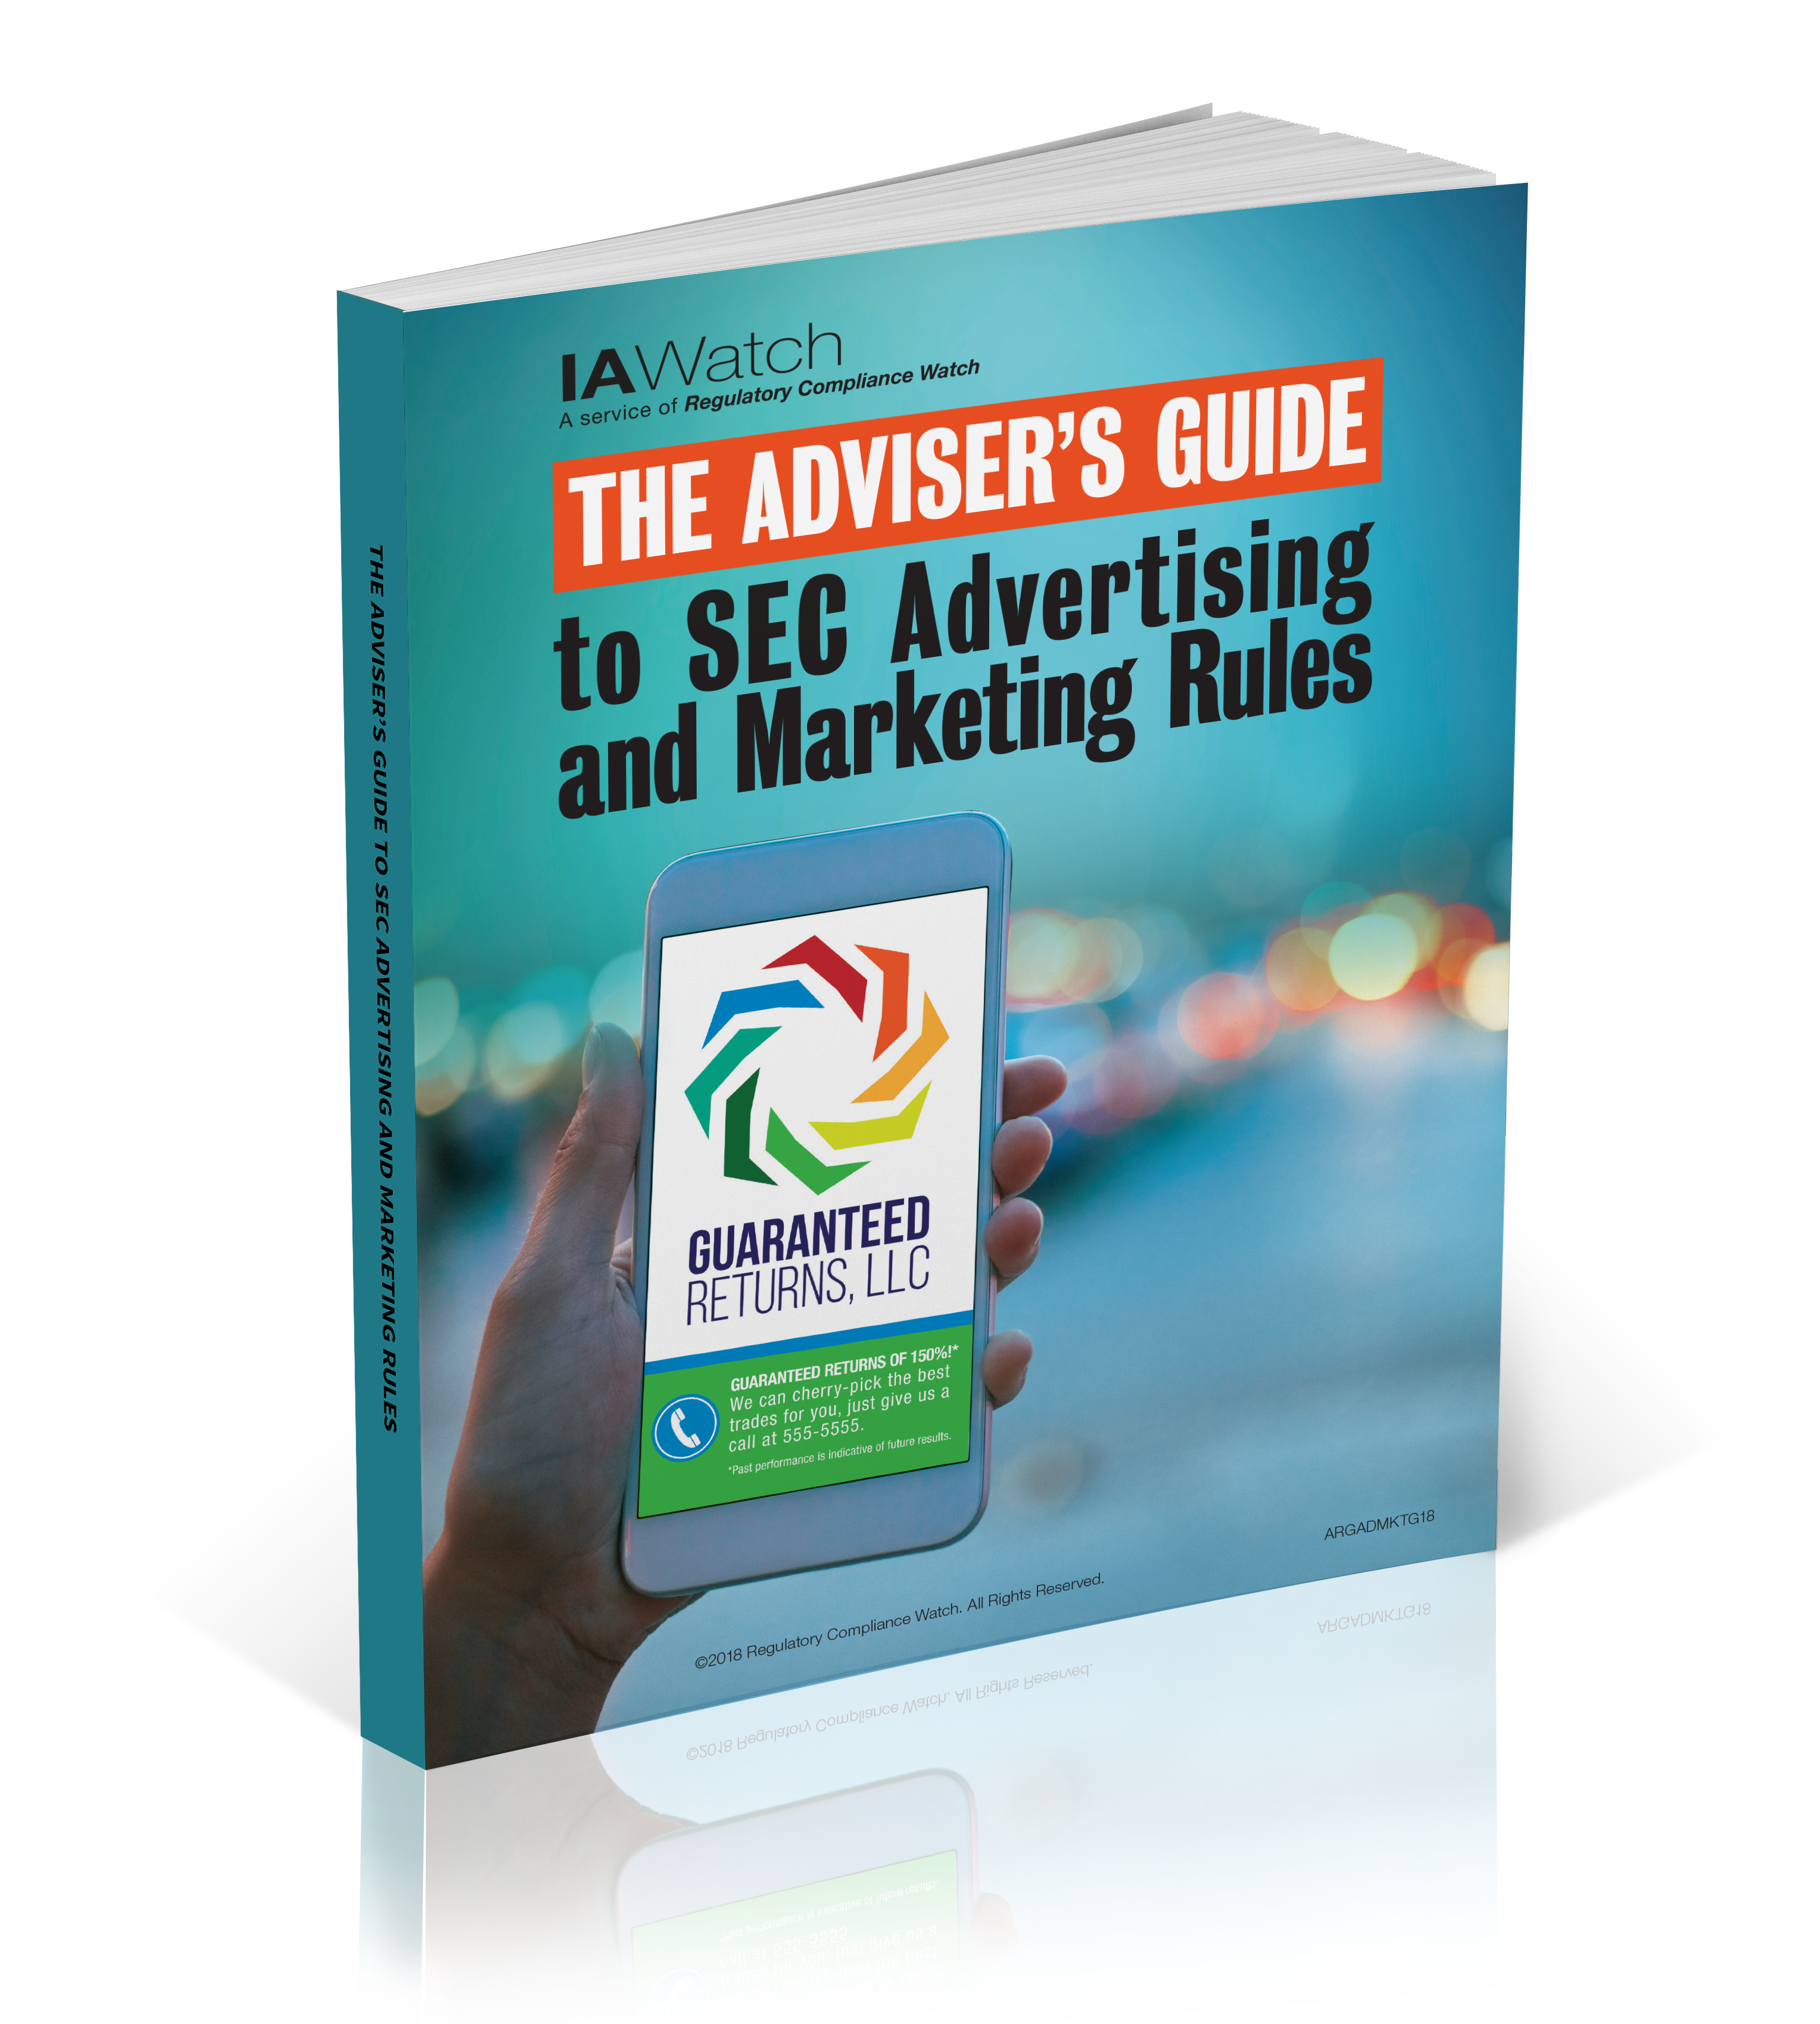 IA Watch's The Adviser's Guide to SEC Advertising and Marketing Rules